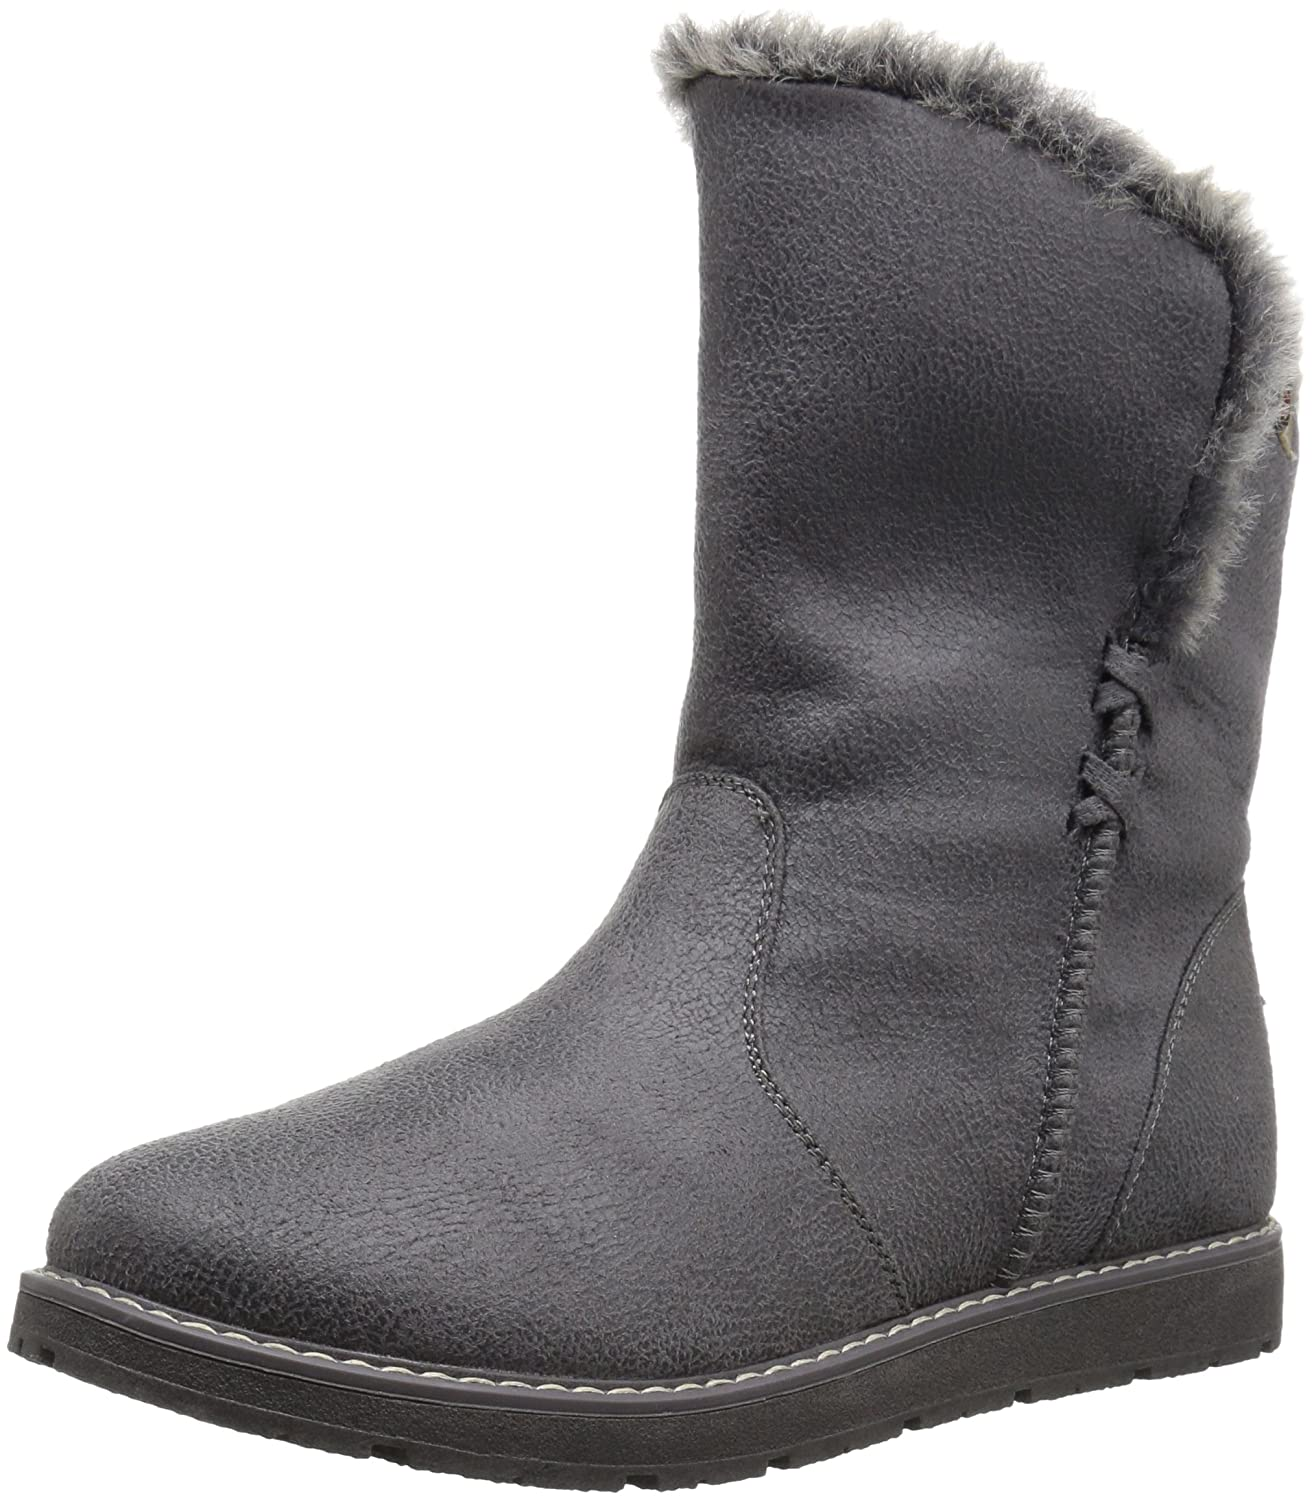 Skechers BOBS from Women's Bobs Alpine Puddle Jump Cozy Winter Boot B01ABY2XN6 5 B(M) US|Charcoal